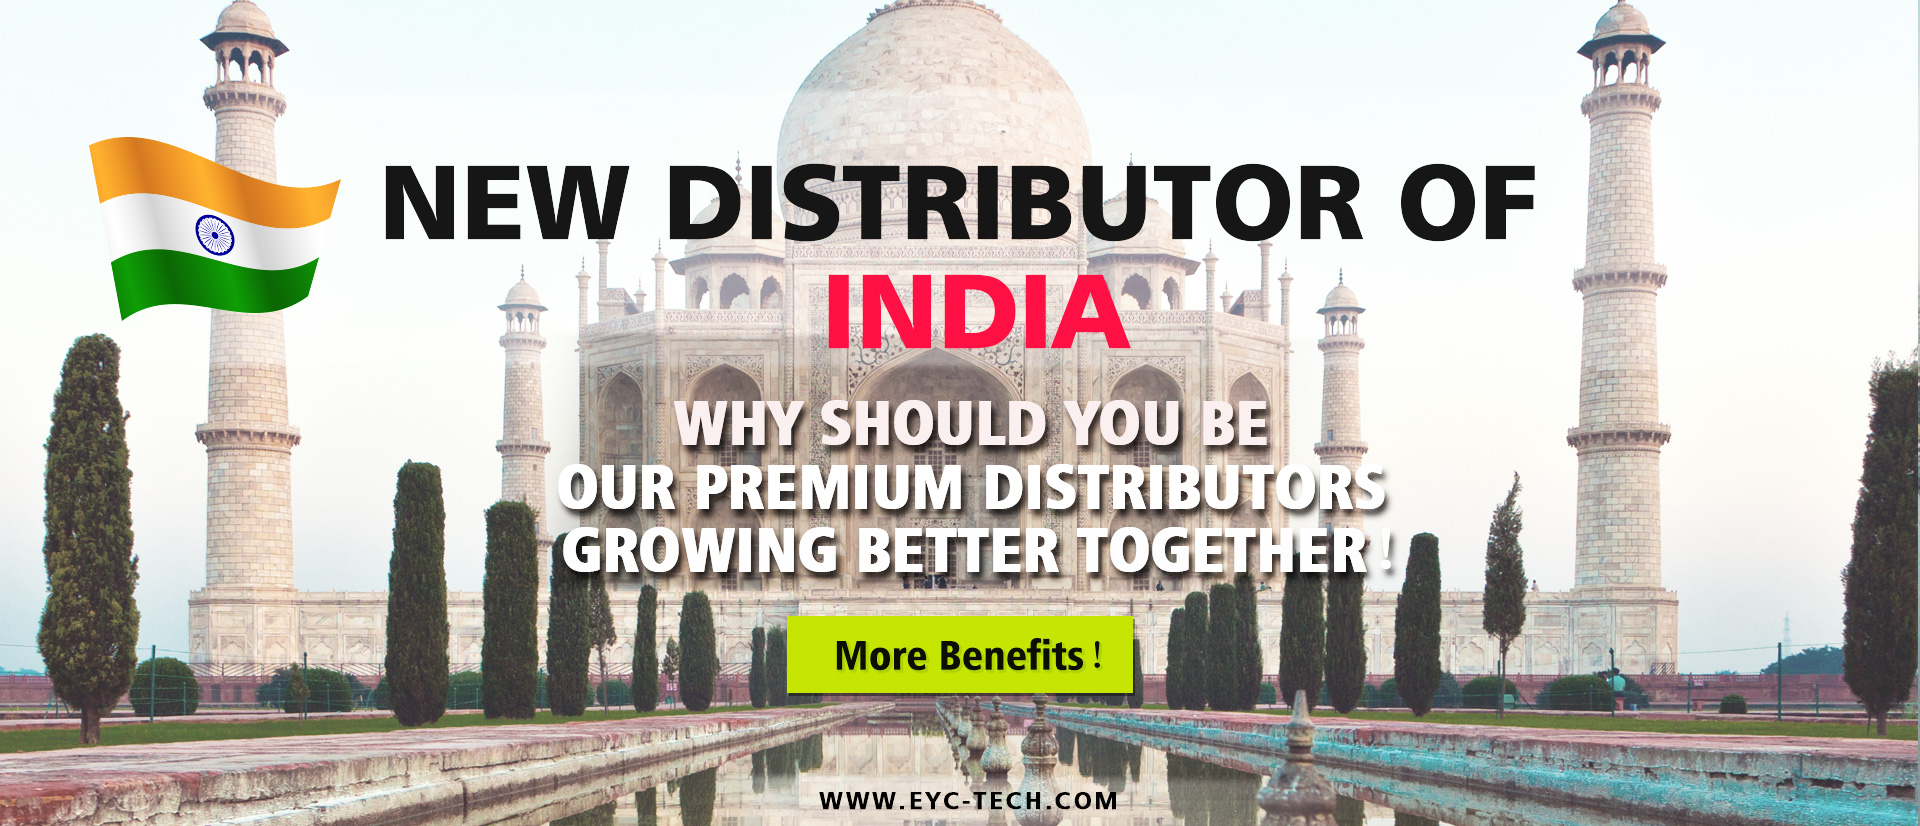 eYc New Premium Distributor of India 2018